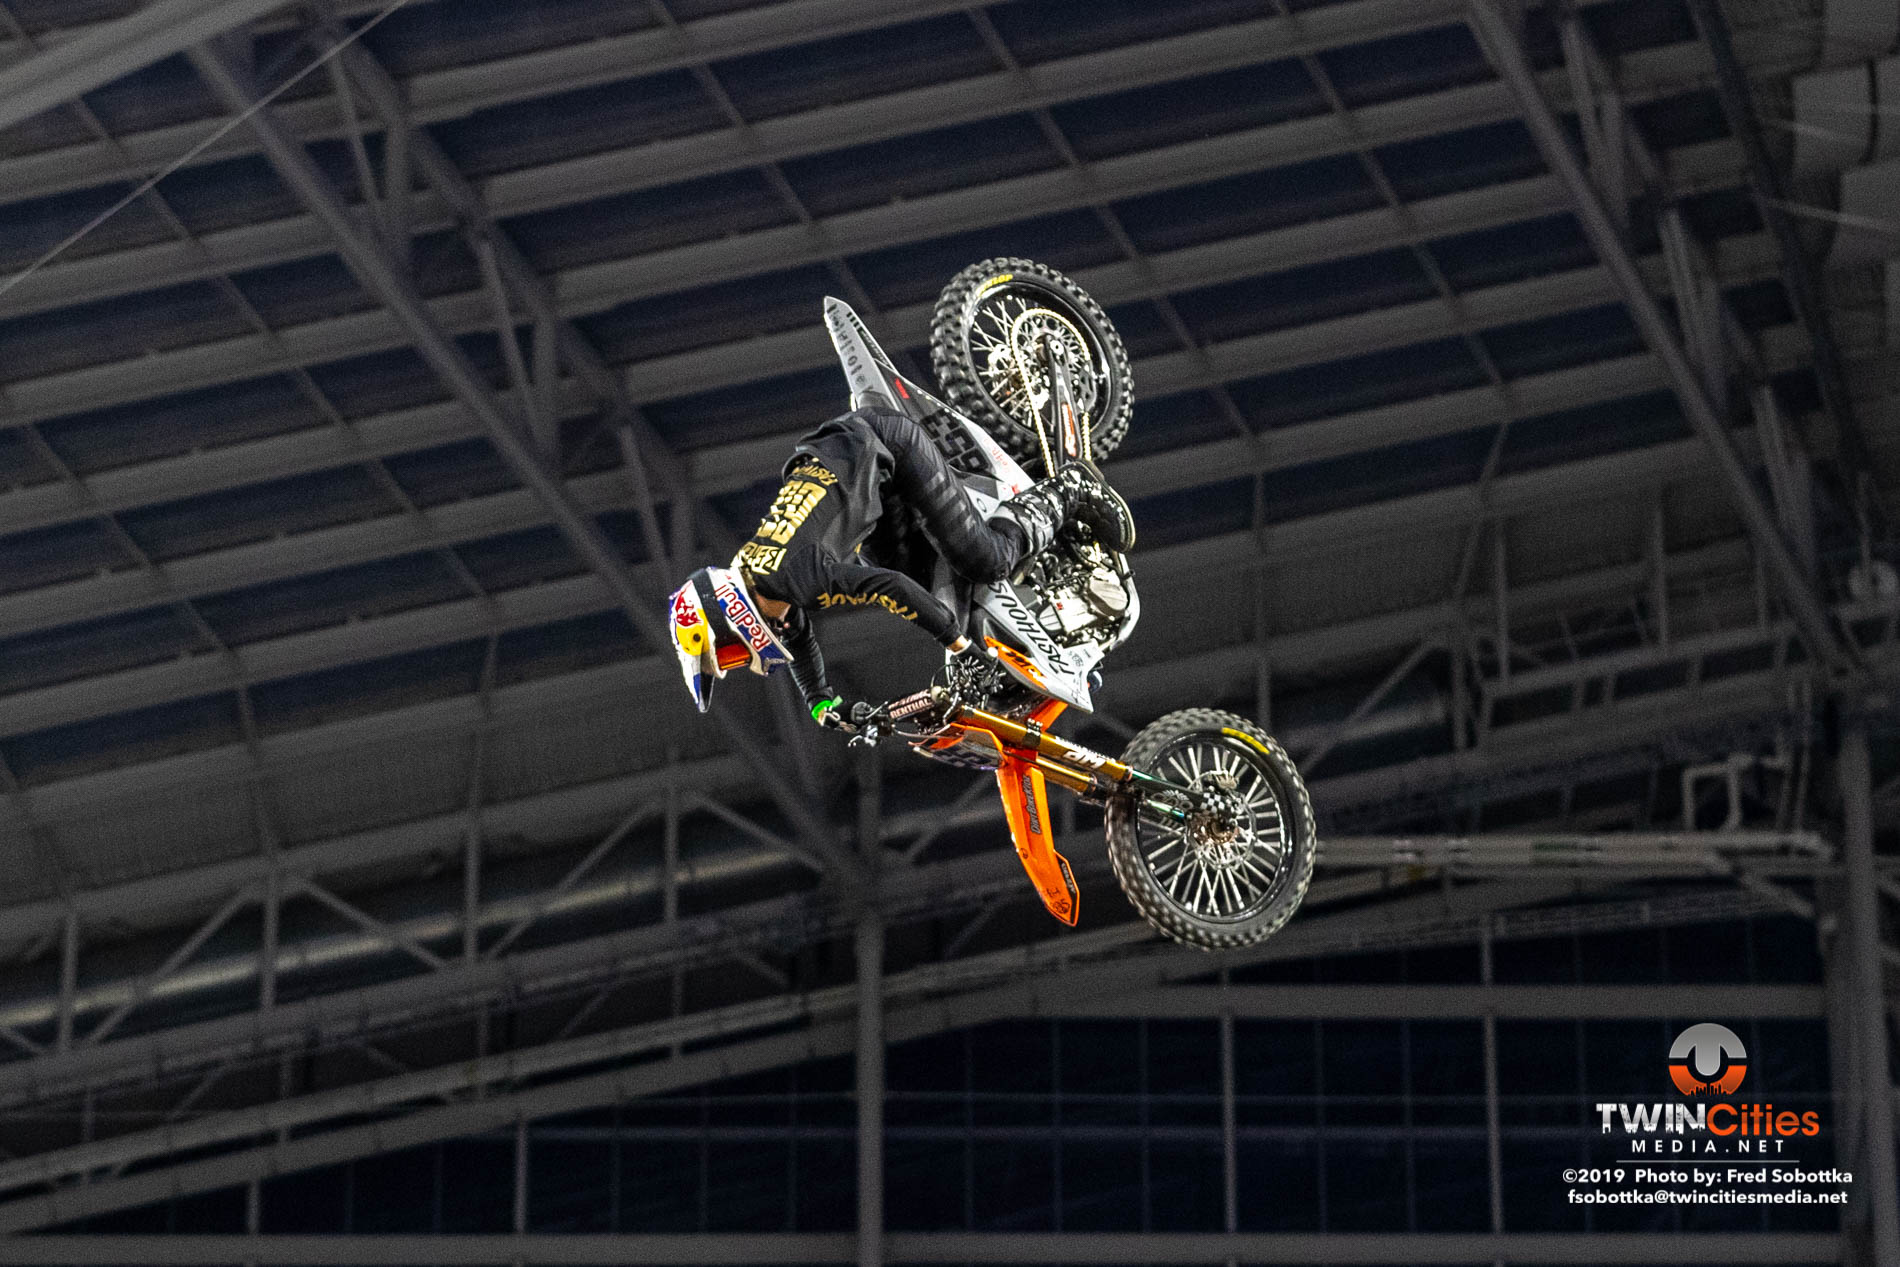 Moto-X-Quarterpipe-High-Air-06